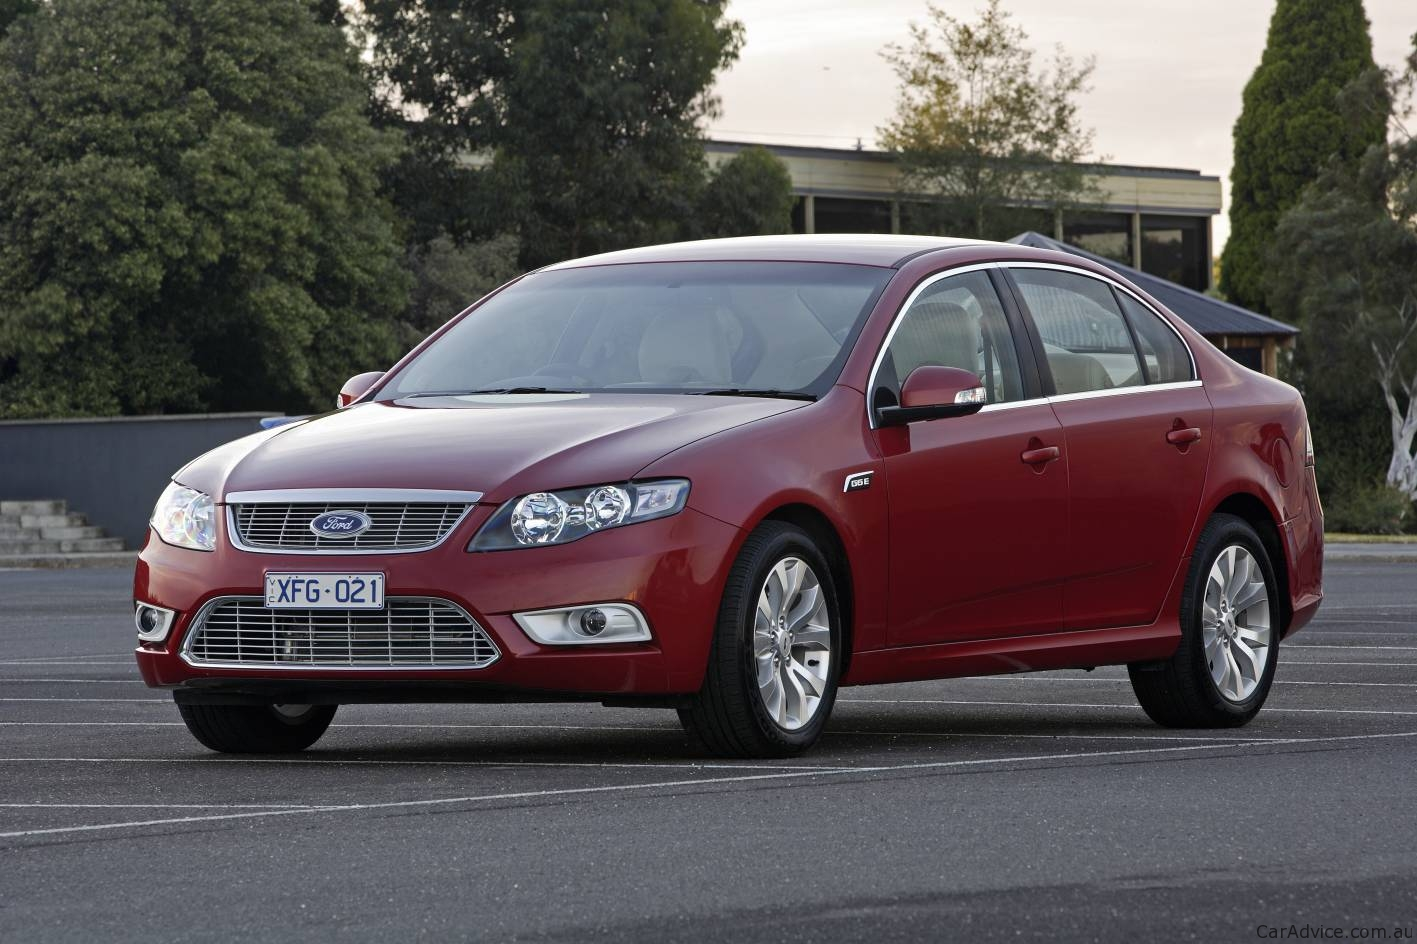 2011 Toyota Corolla For Sale >> 2011 Ford Falcon EcoLPi LPG on sale mid-year - Photos (1 of 5)